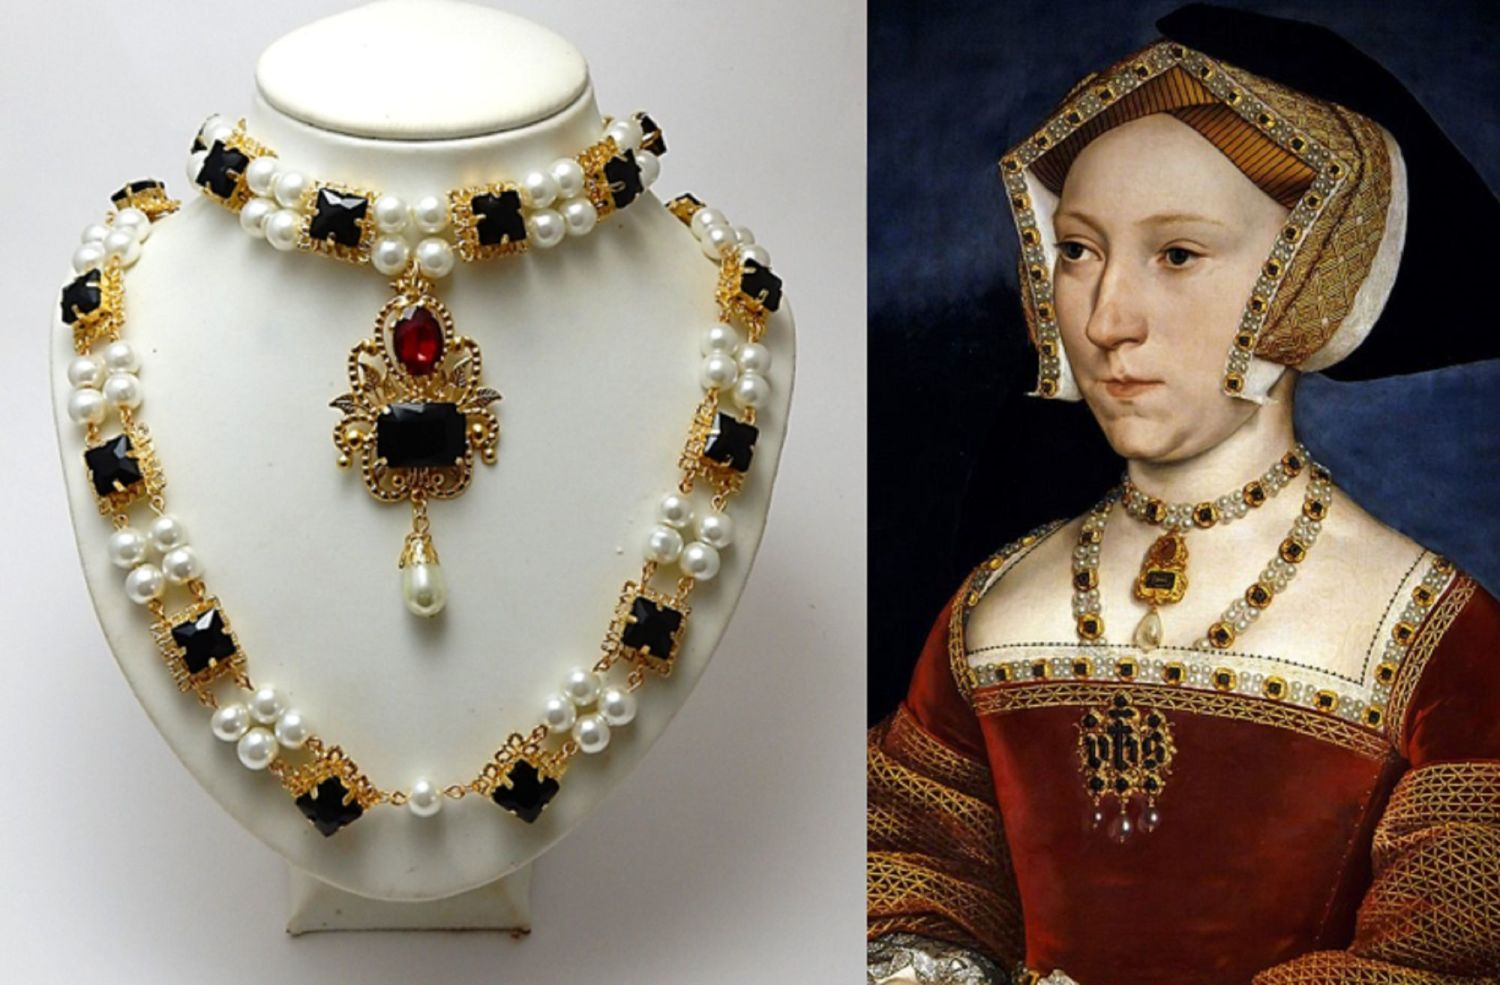 jane seymour double carconet compare.png1